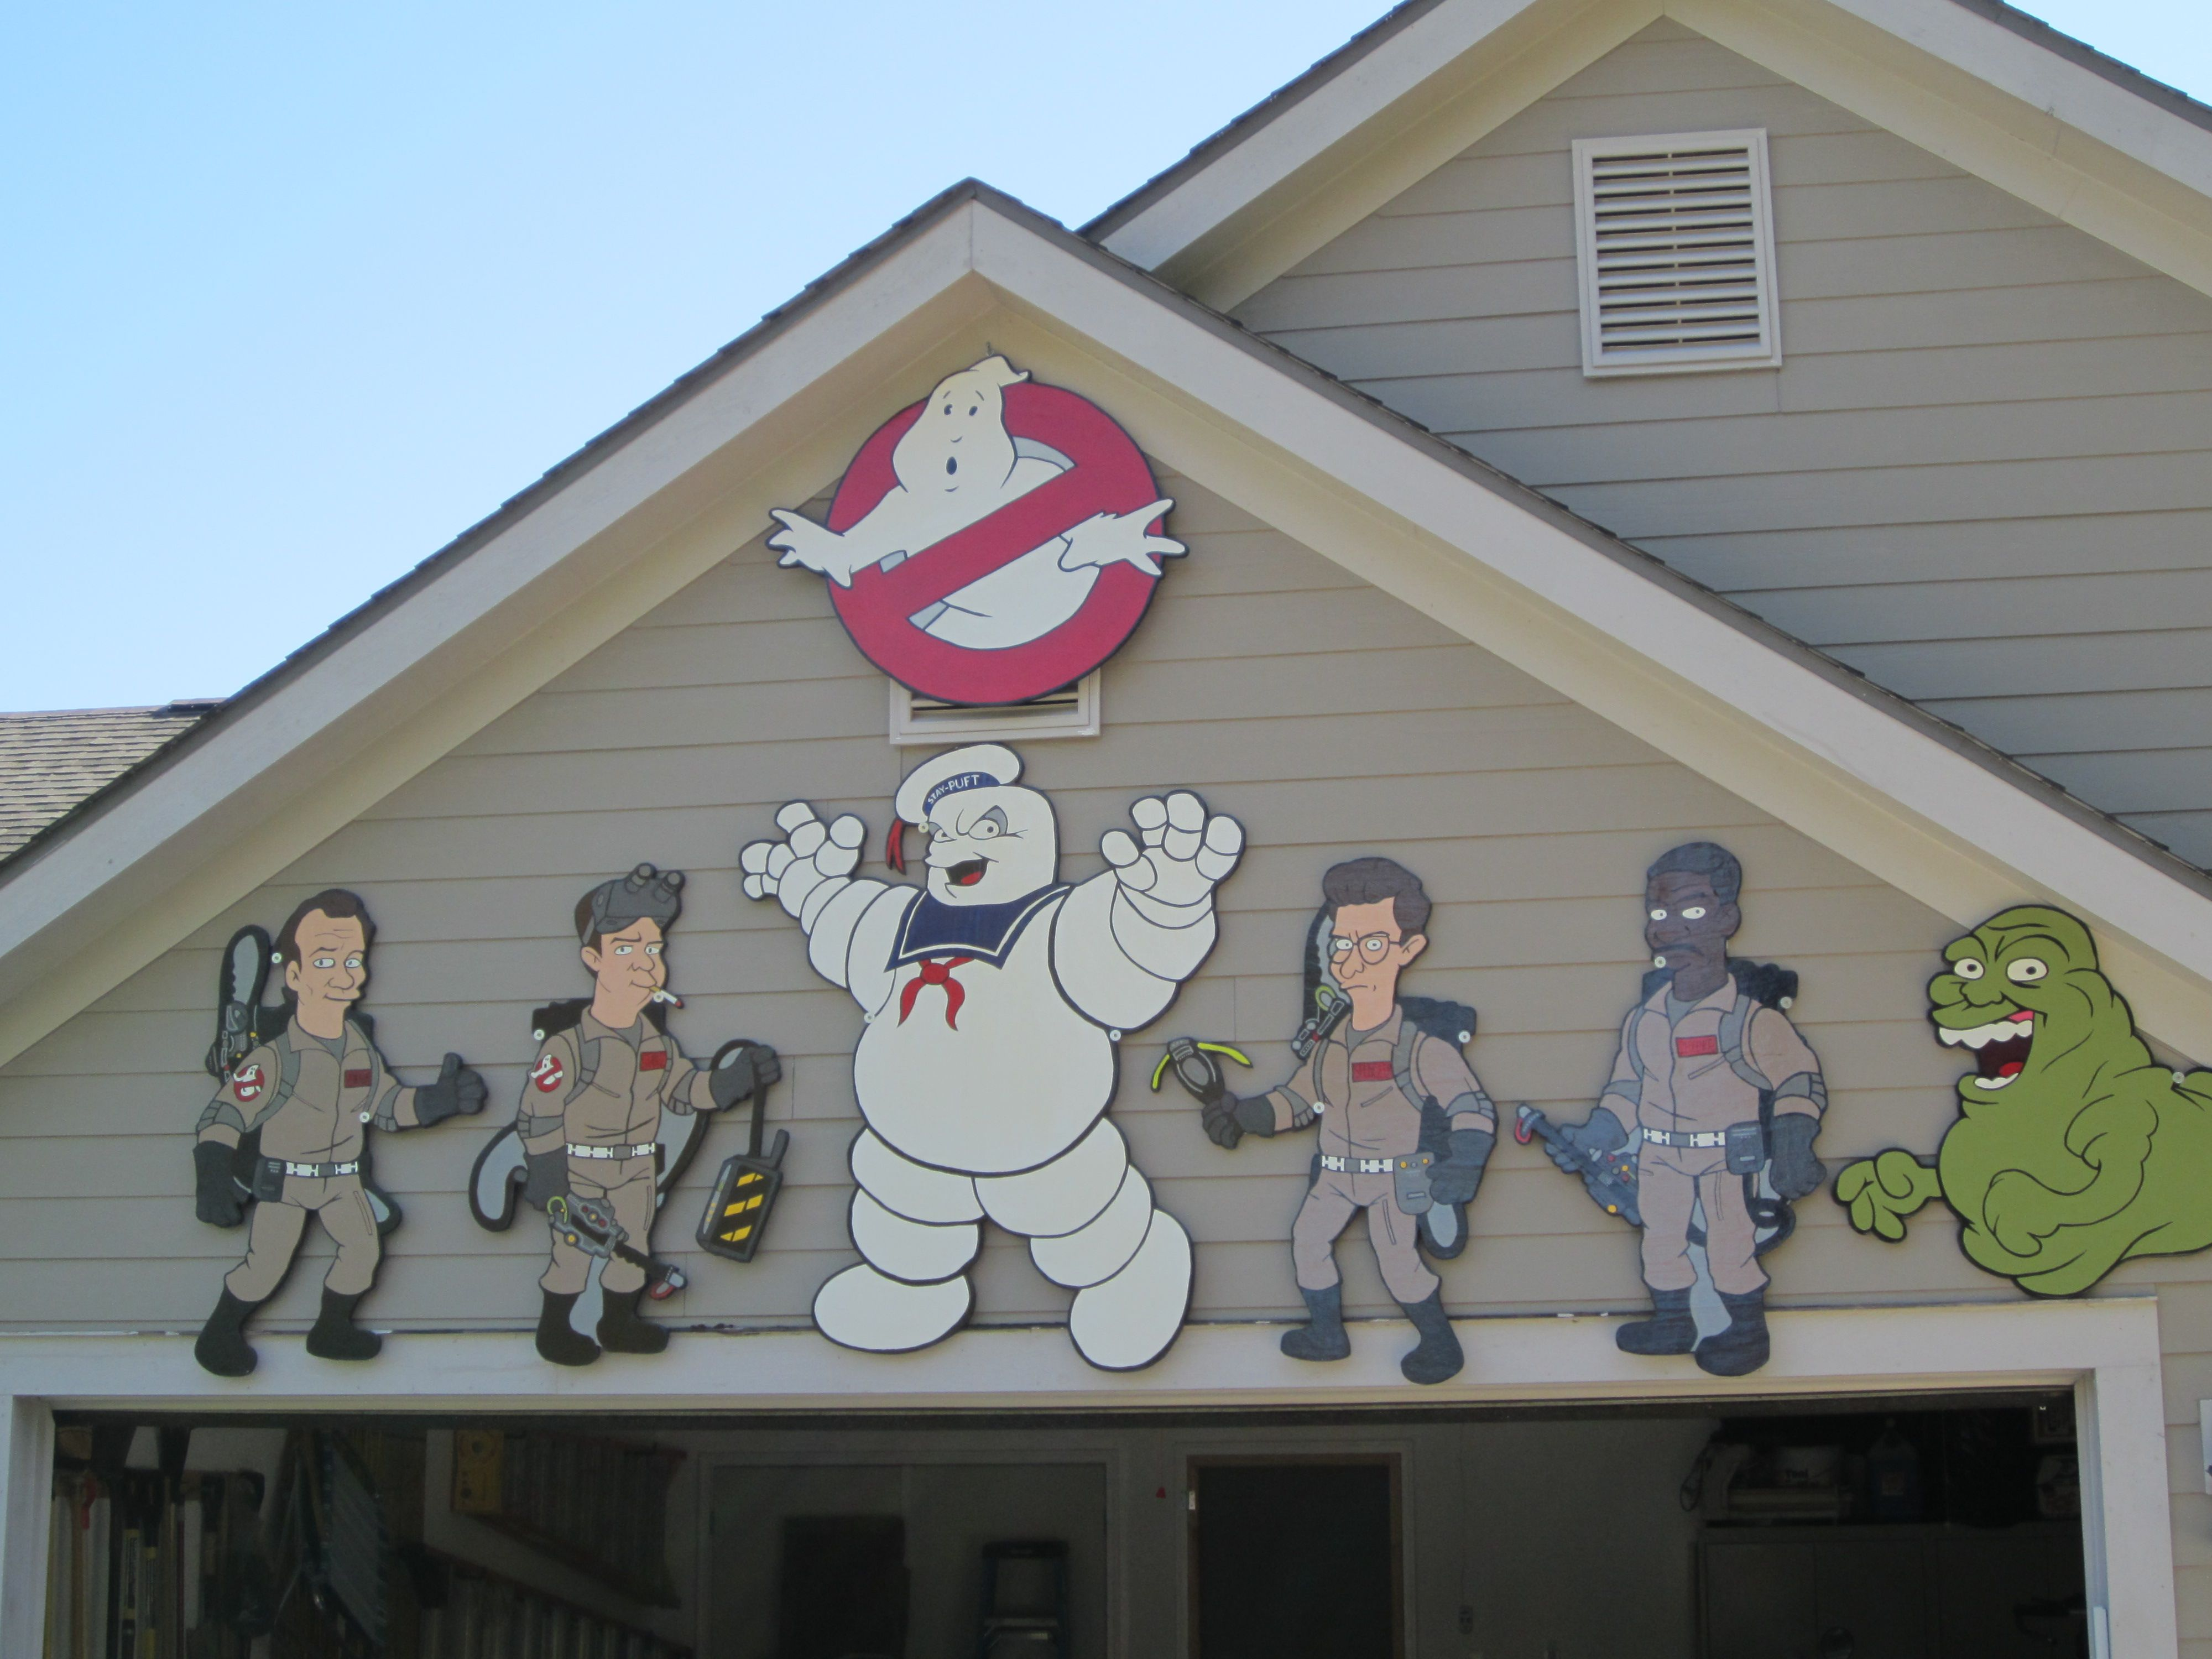 Wooden halloween yard decorations - Halloween Plywood Cutouts Yard Art Featuring The Ghostbusters